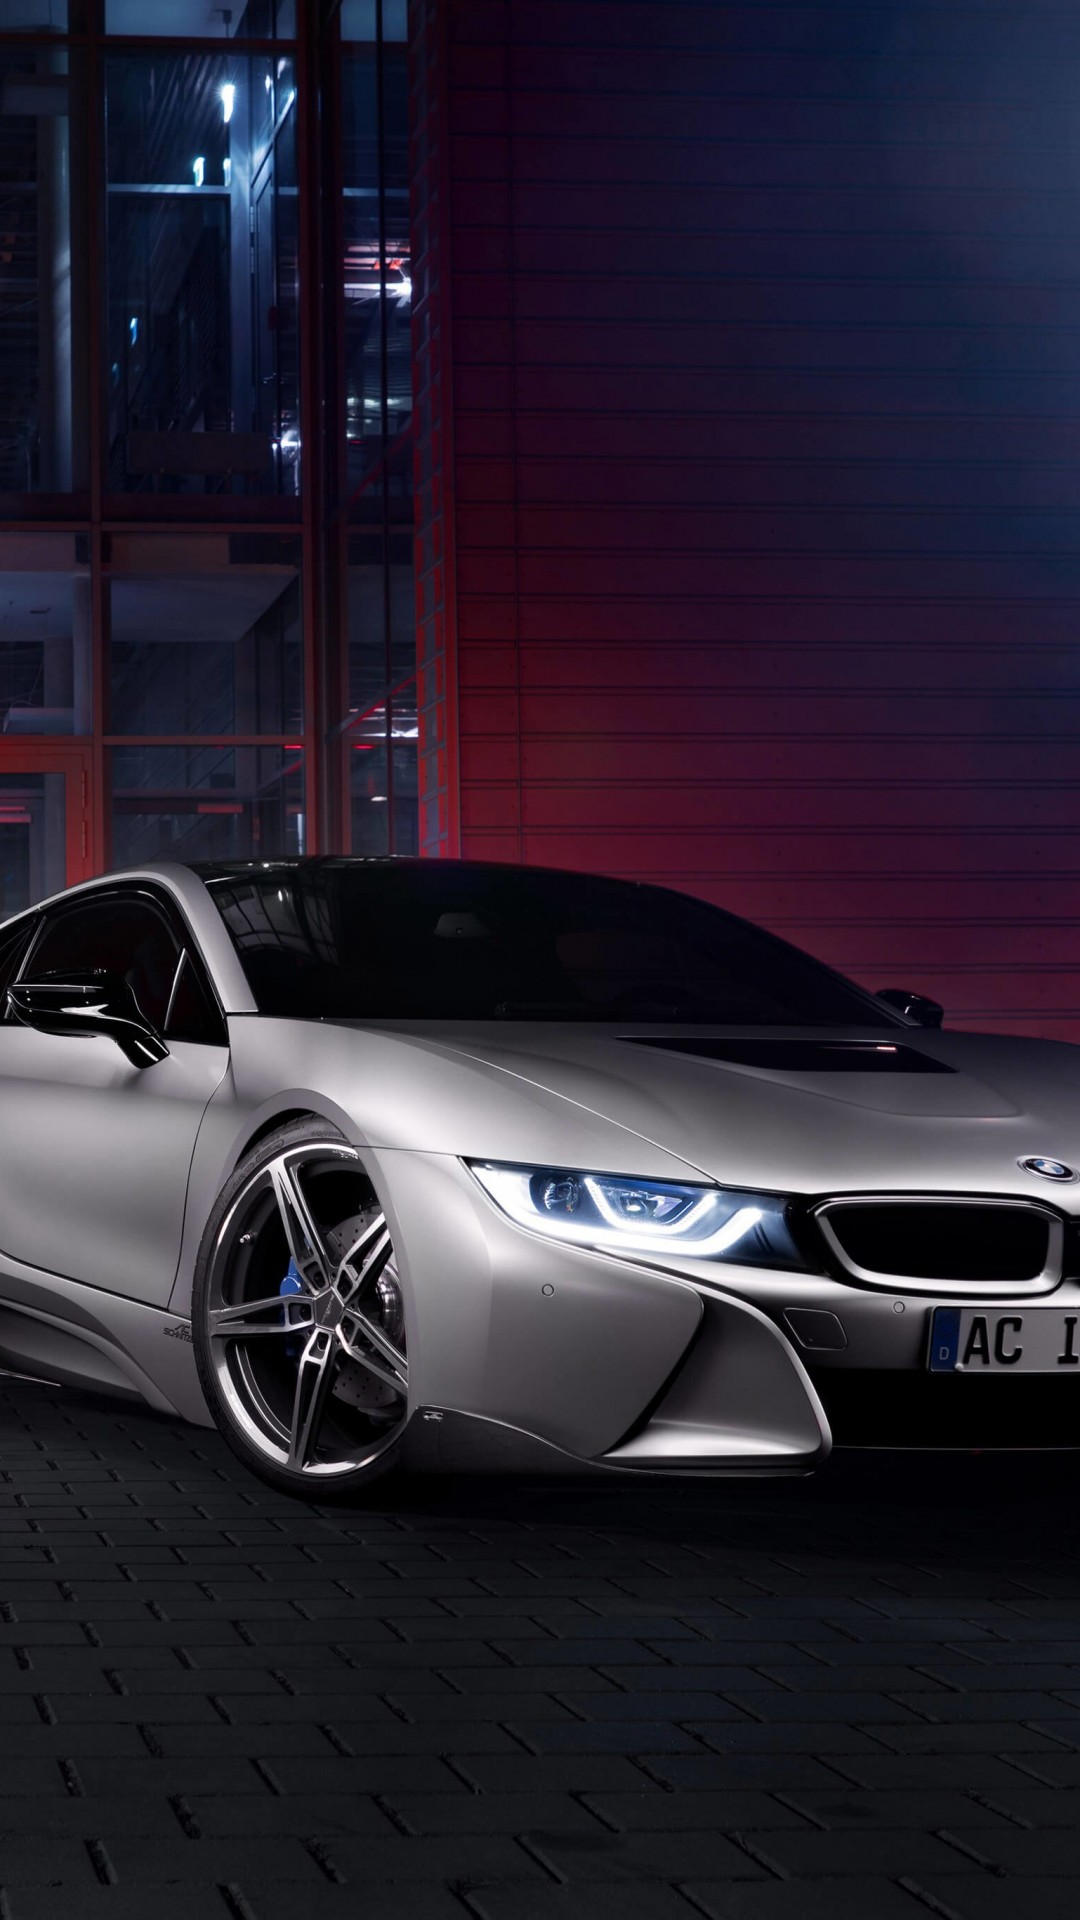 BMW i8 designed by AC Schnitzer Wallpaper for Google Nexus 5X